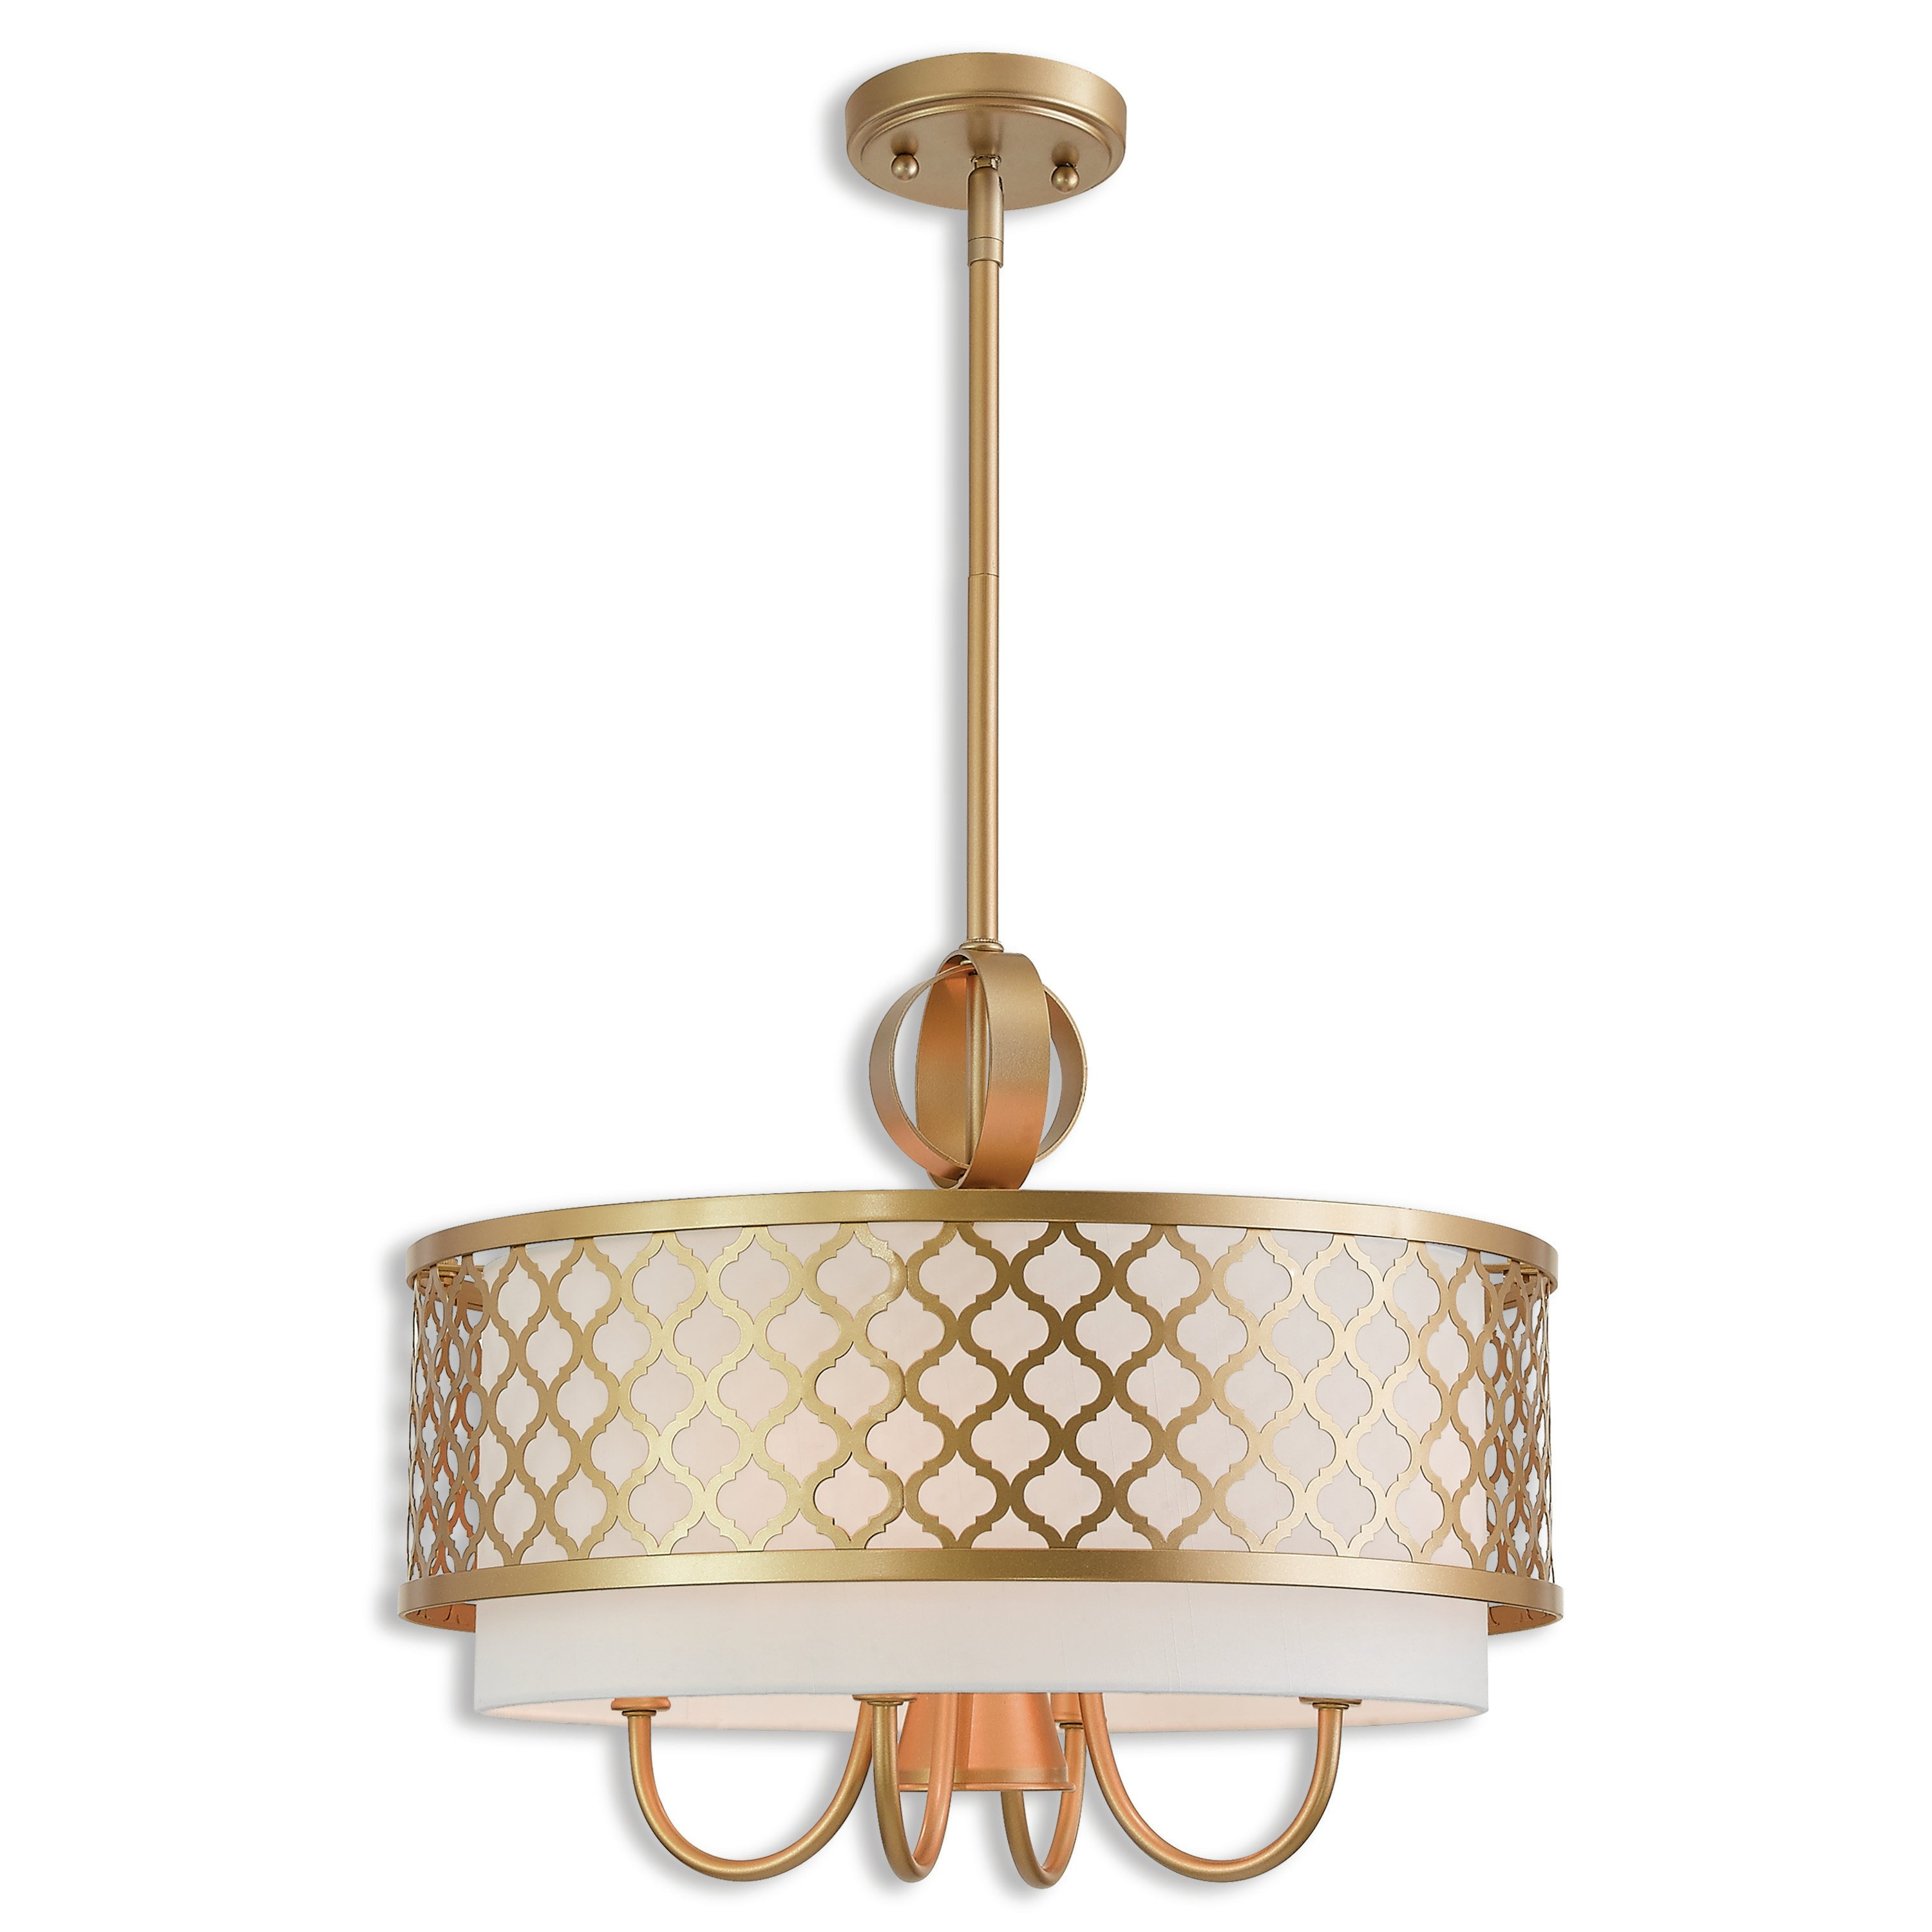 Tymvou 5 Light Drum Chandelier Pertaining To Fashionable Hermione 5 Light Drum Chandeliers (View 20 of 20)